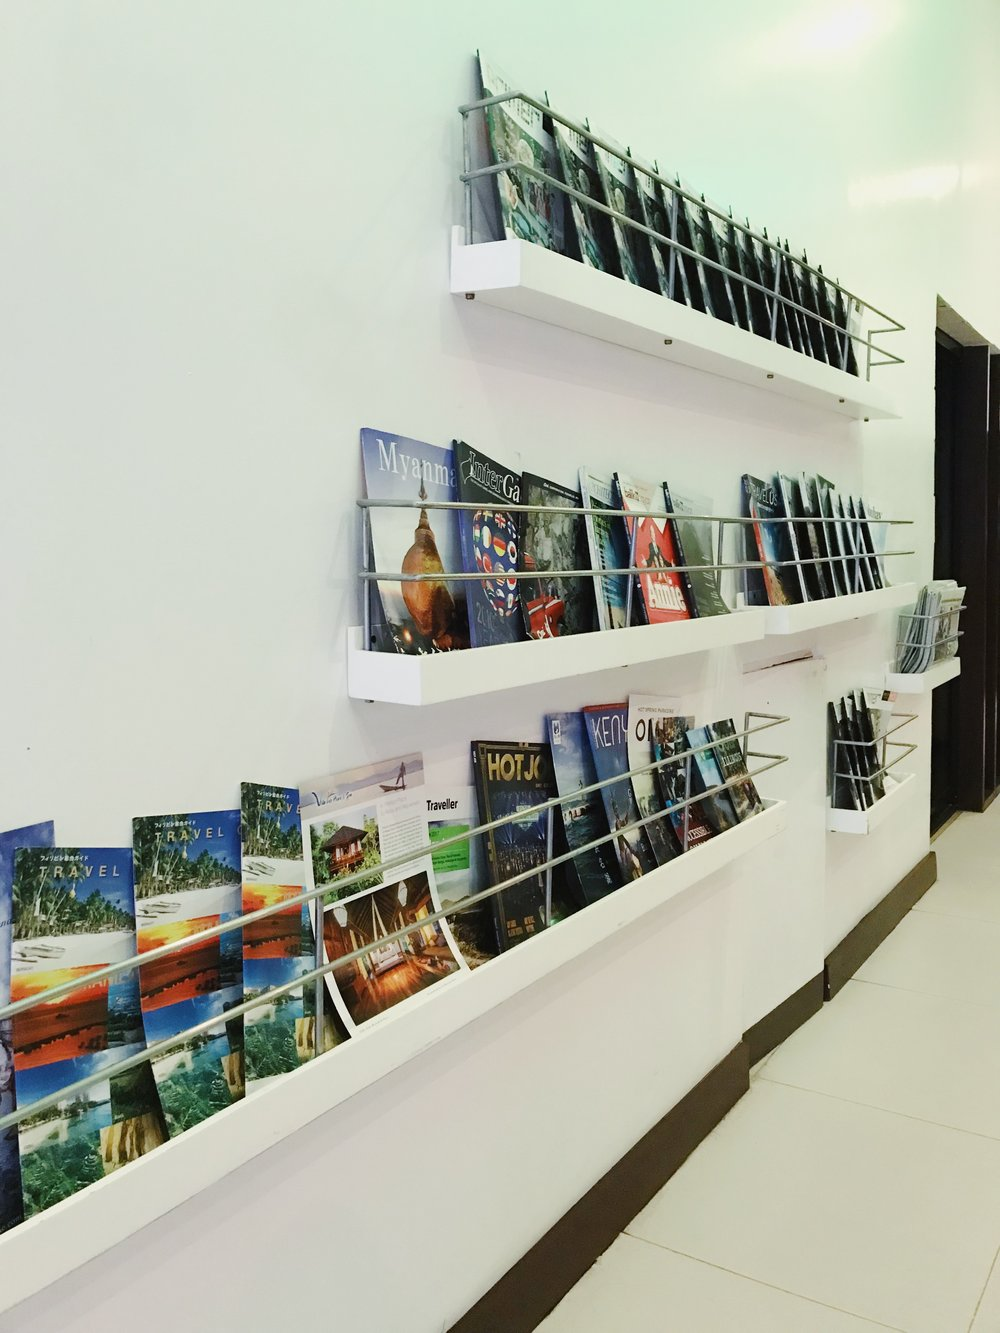 Magazines and newspapers are available for reading pleasure.